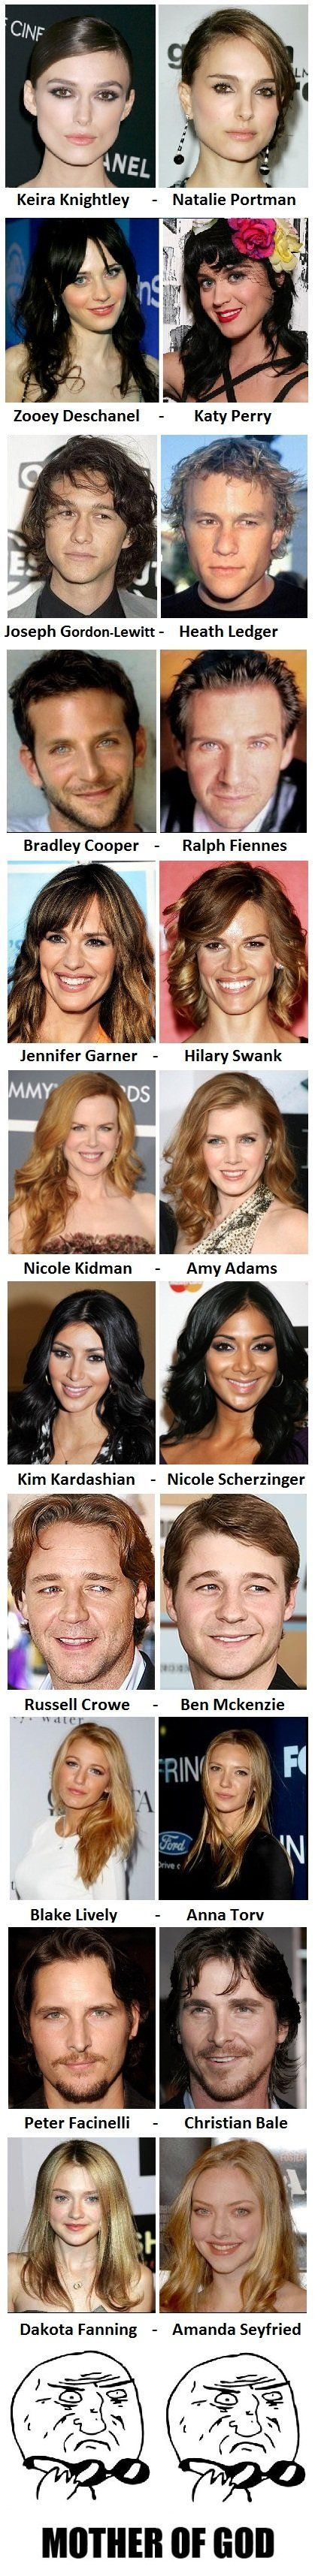 Celebrity Look-A-Likes.